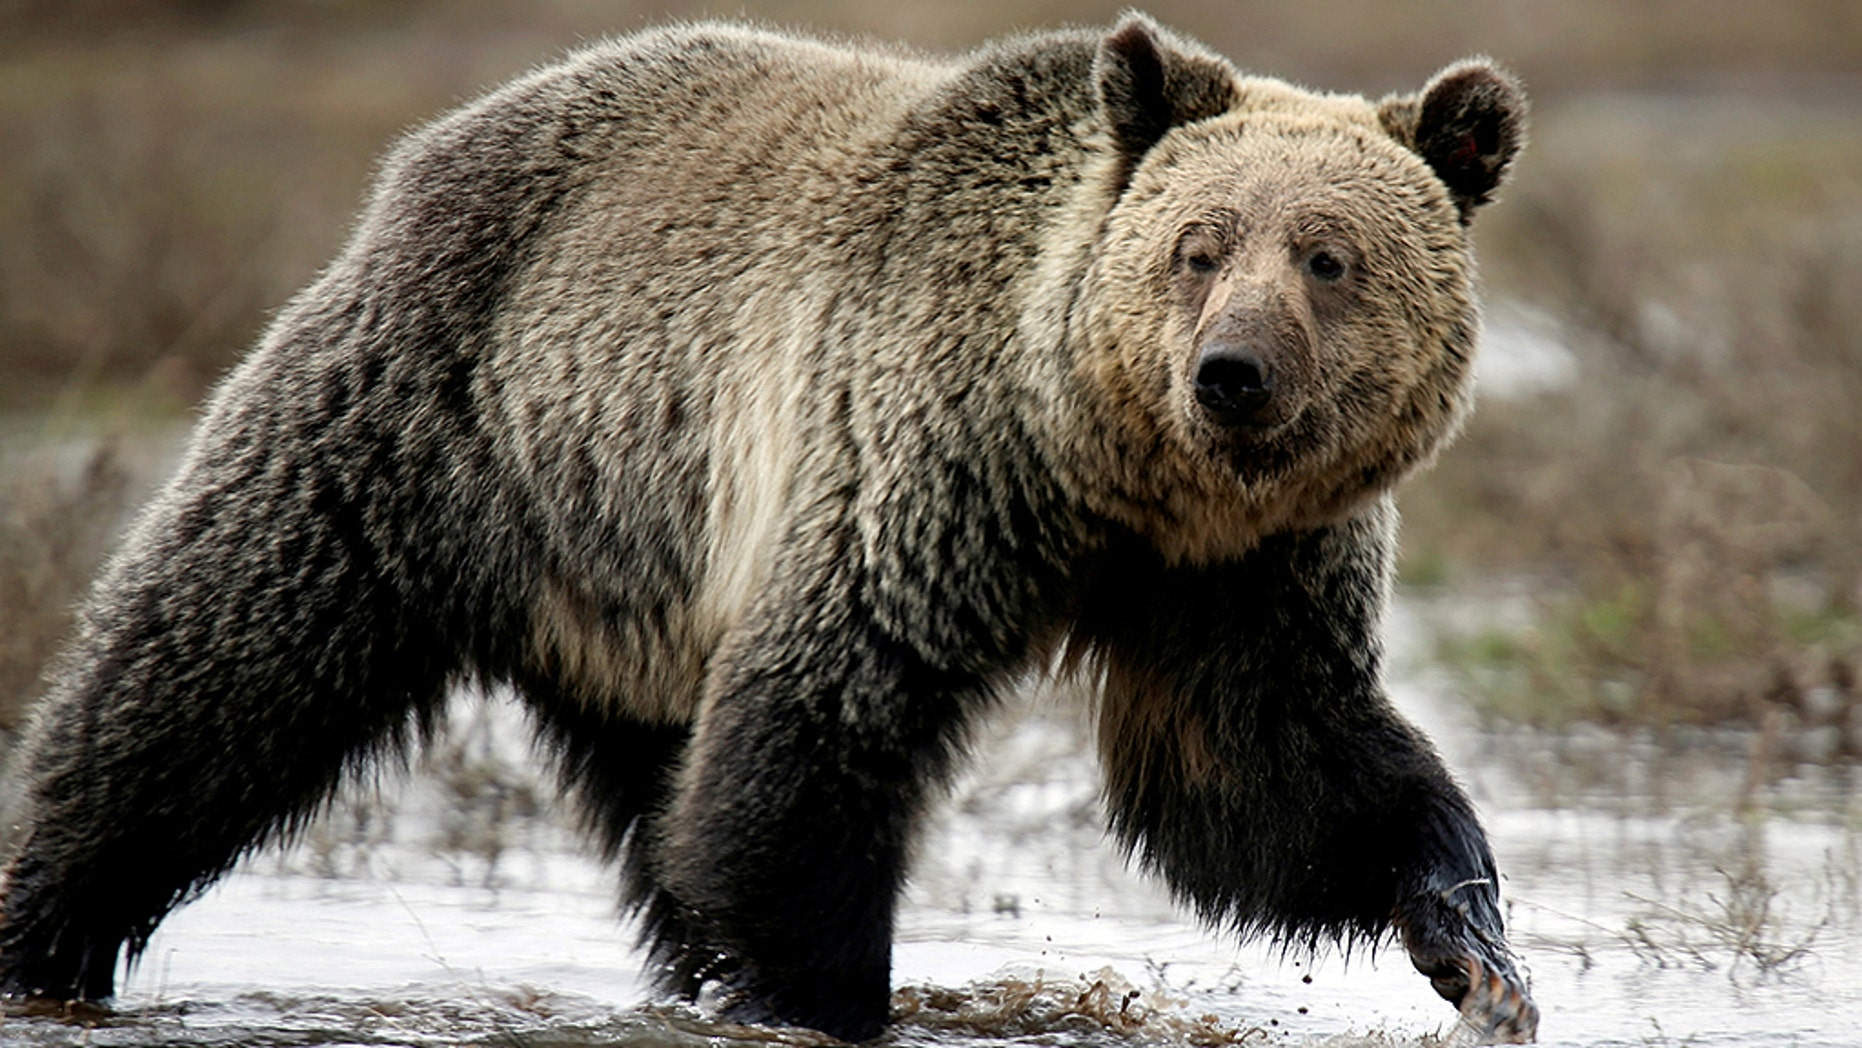 A grizzly bear roams through the Hayden Valley in Yellowstone National Park in Wyoming.